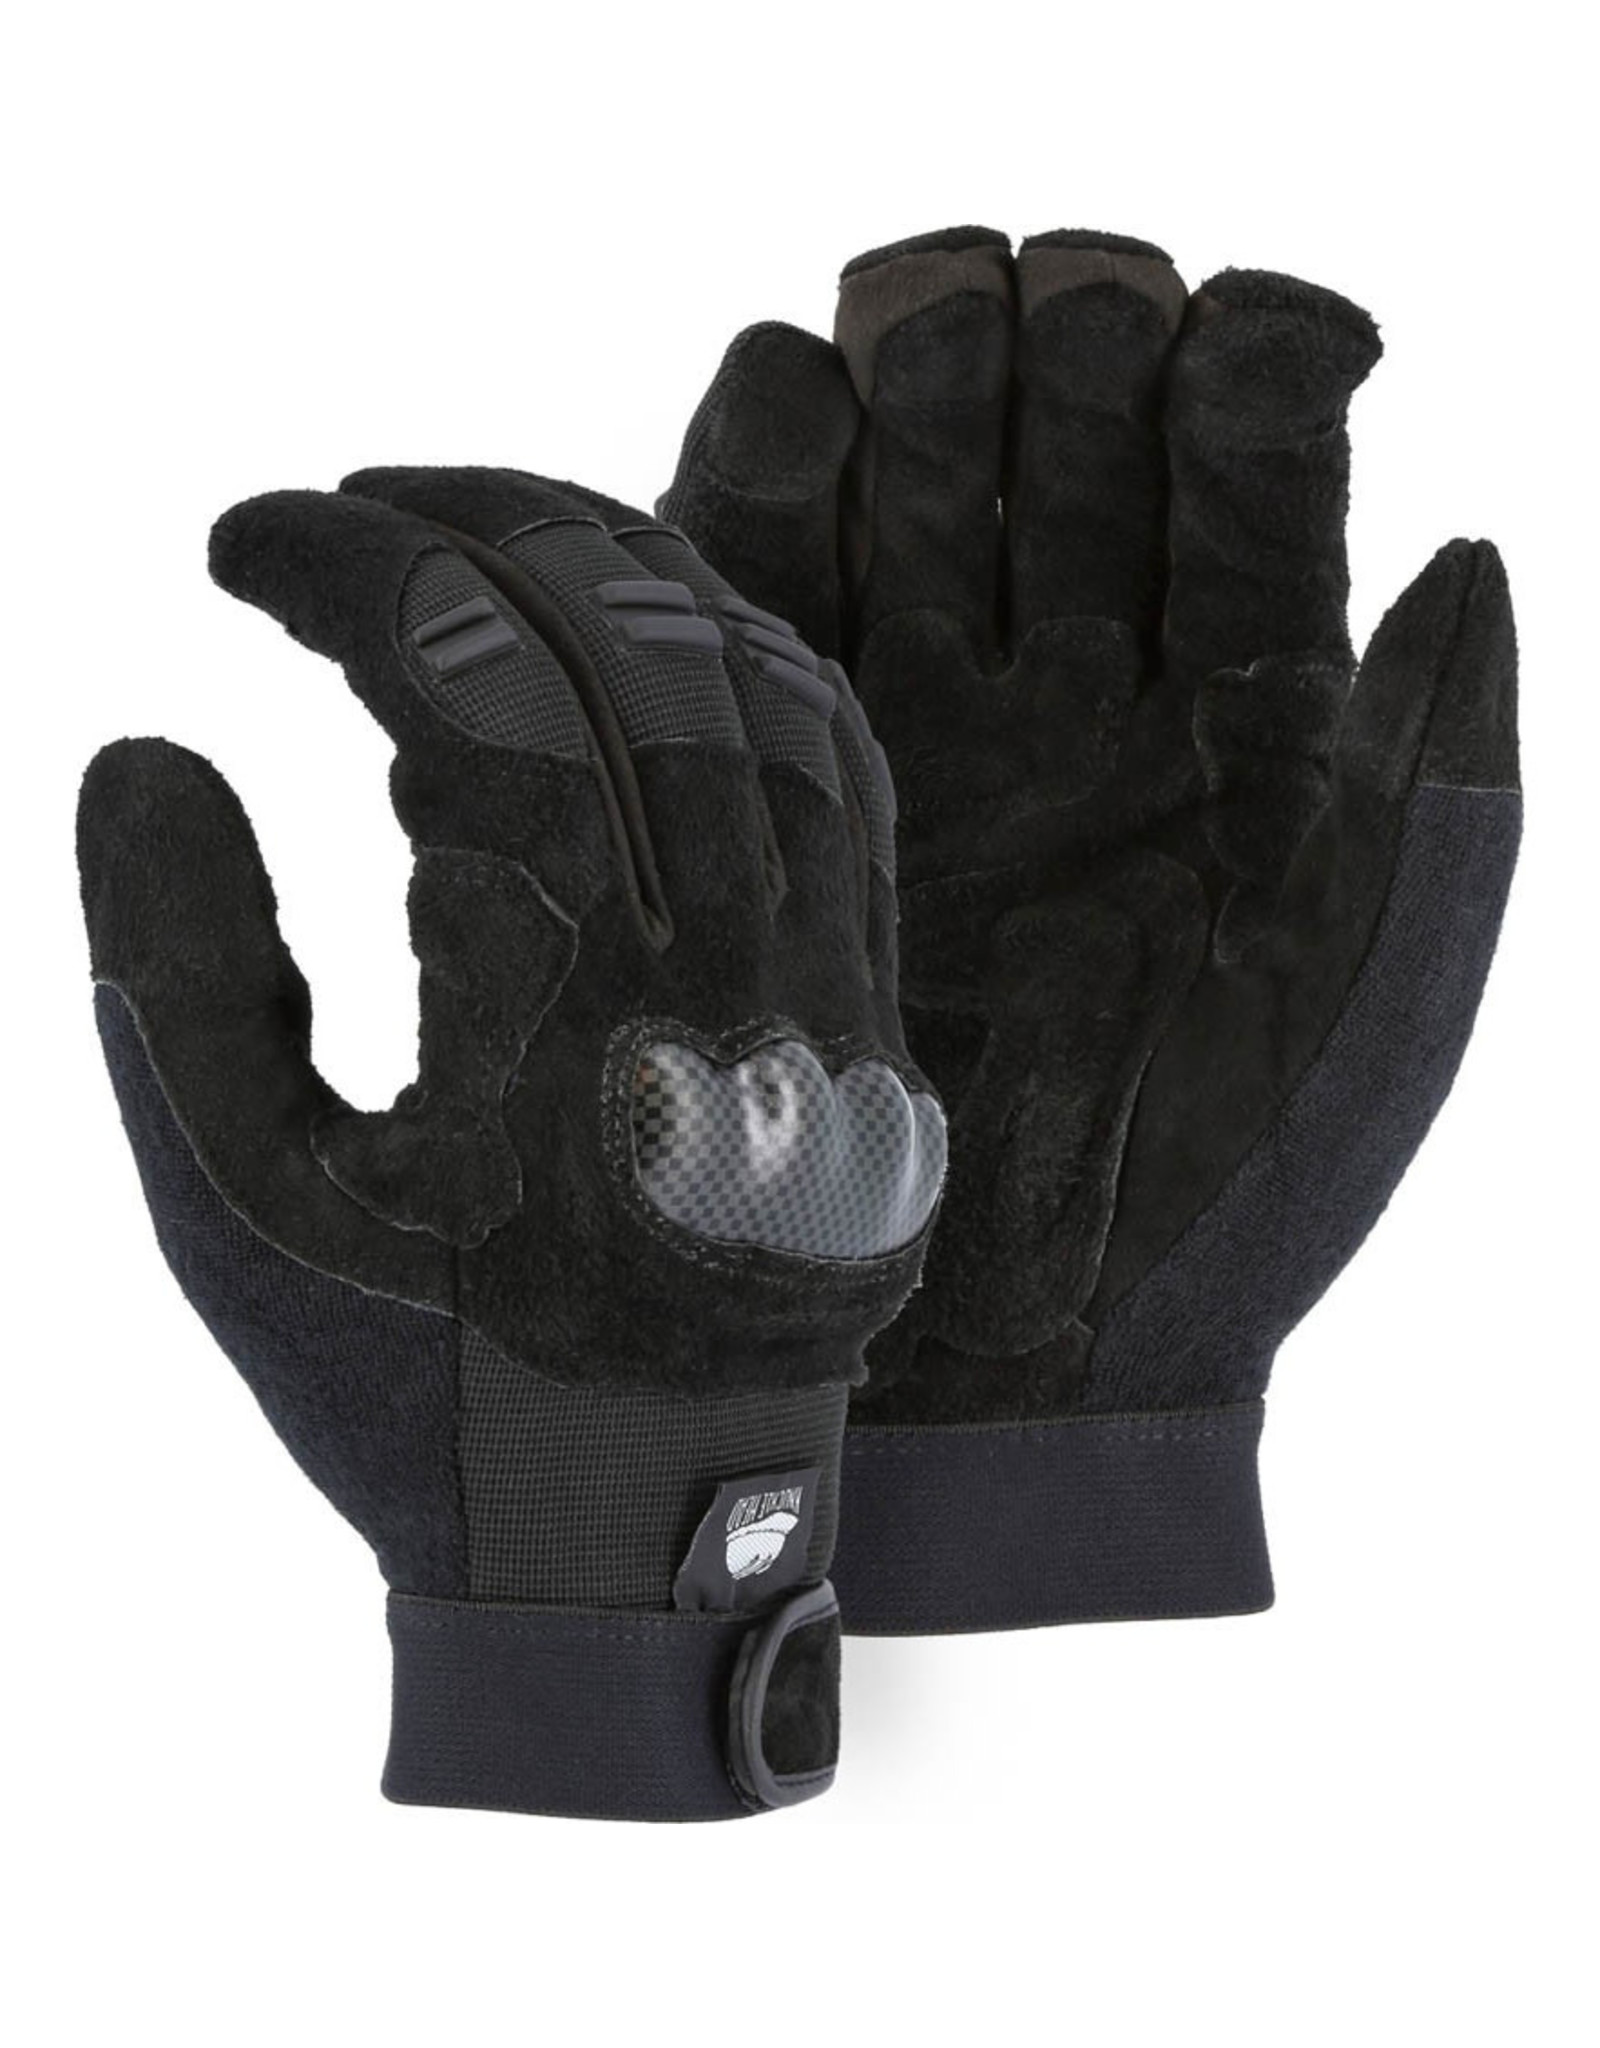 Majestic Glove Knucklehead Mechanics Glove With Cowhide Palm And Impact Knuckle Guard